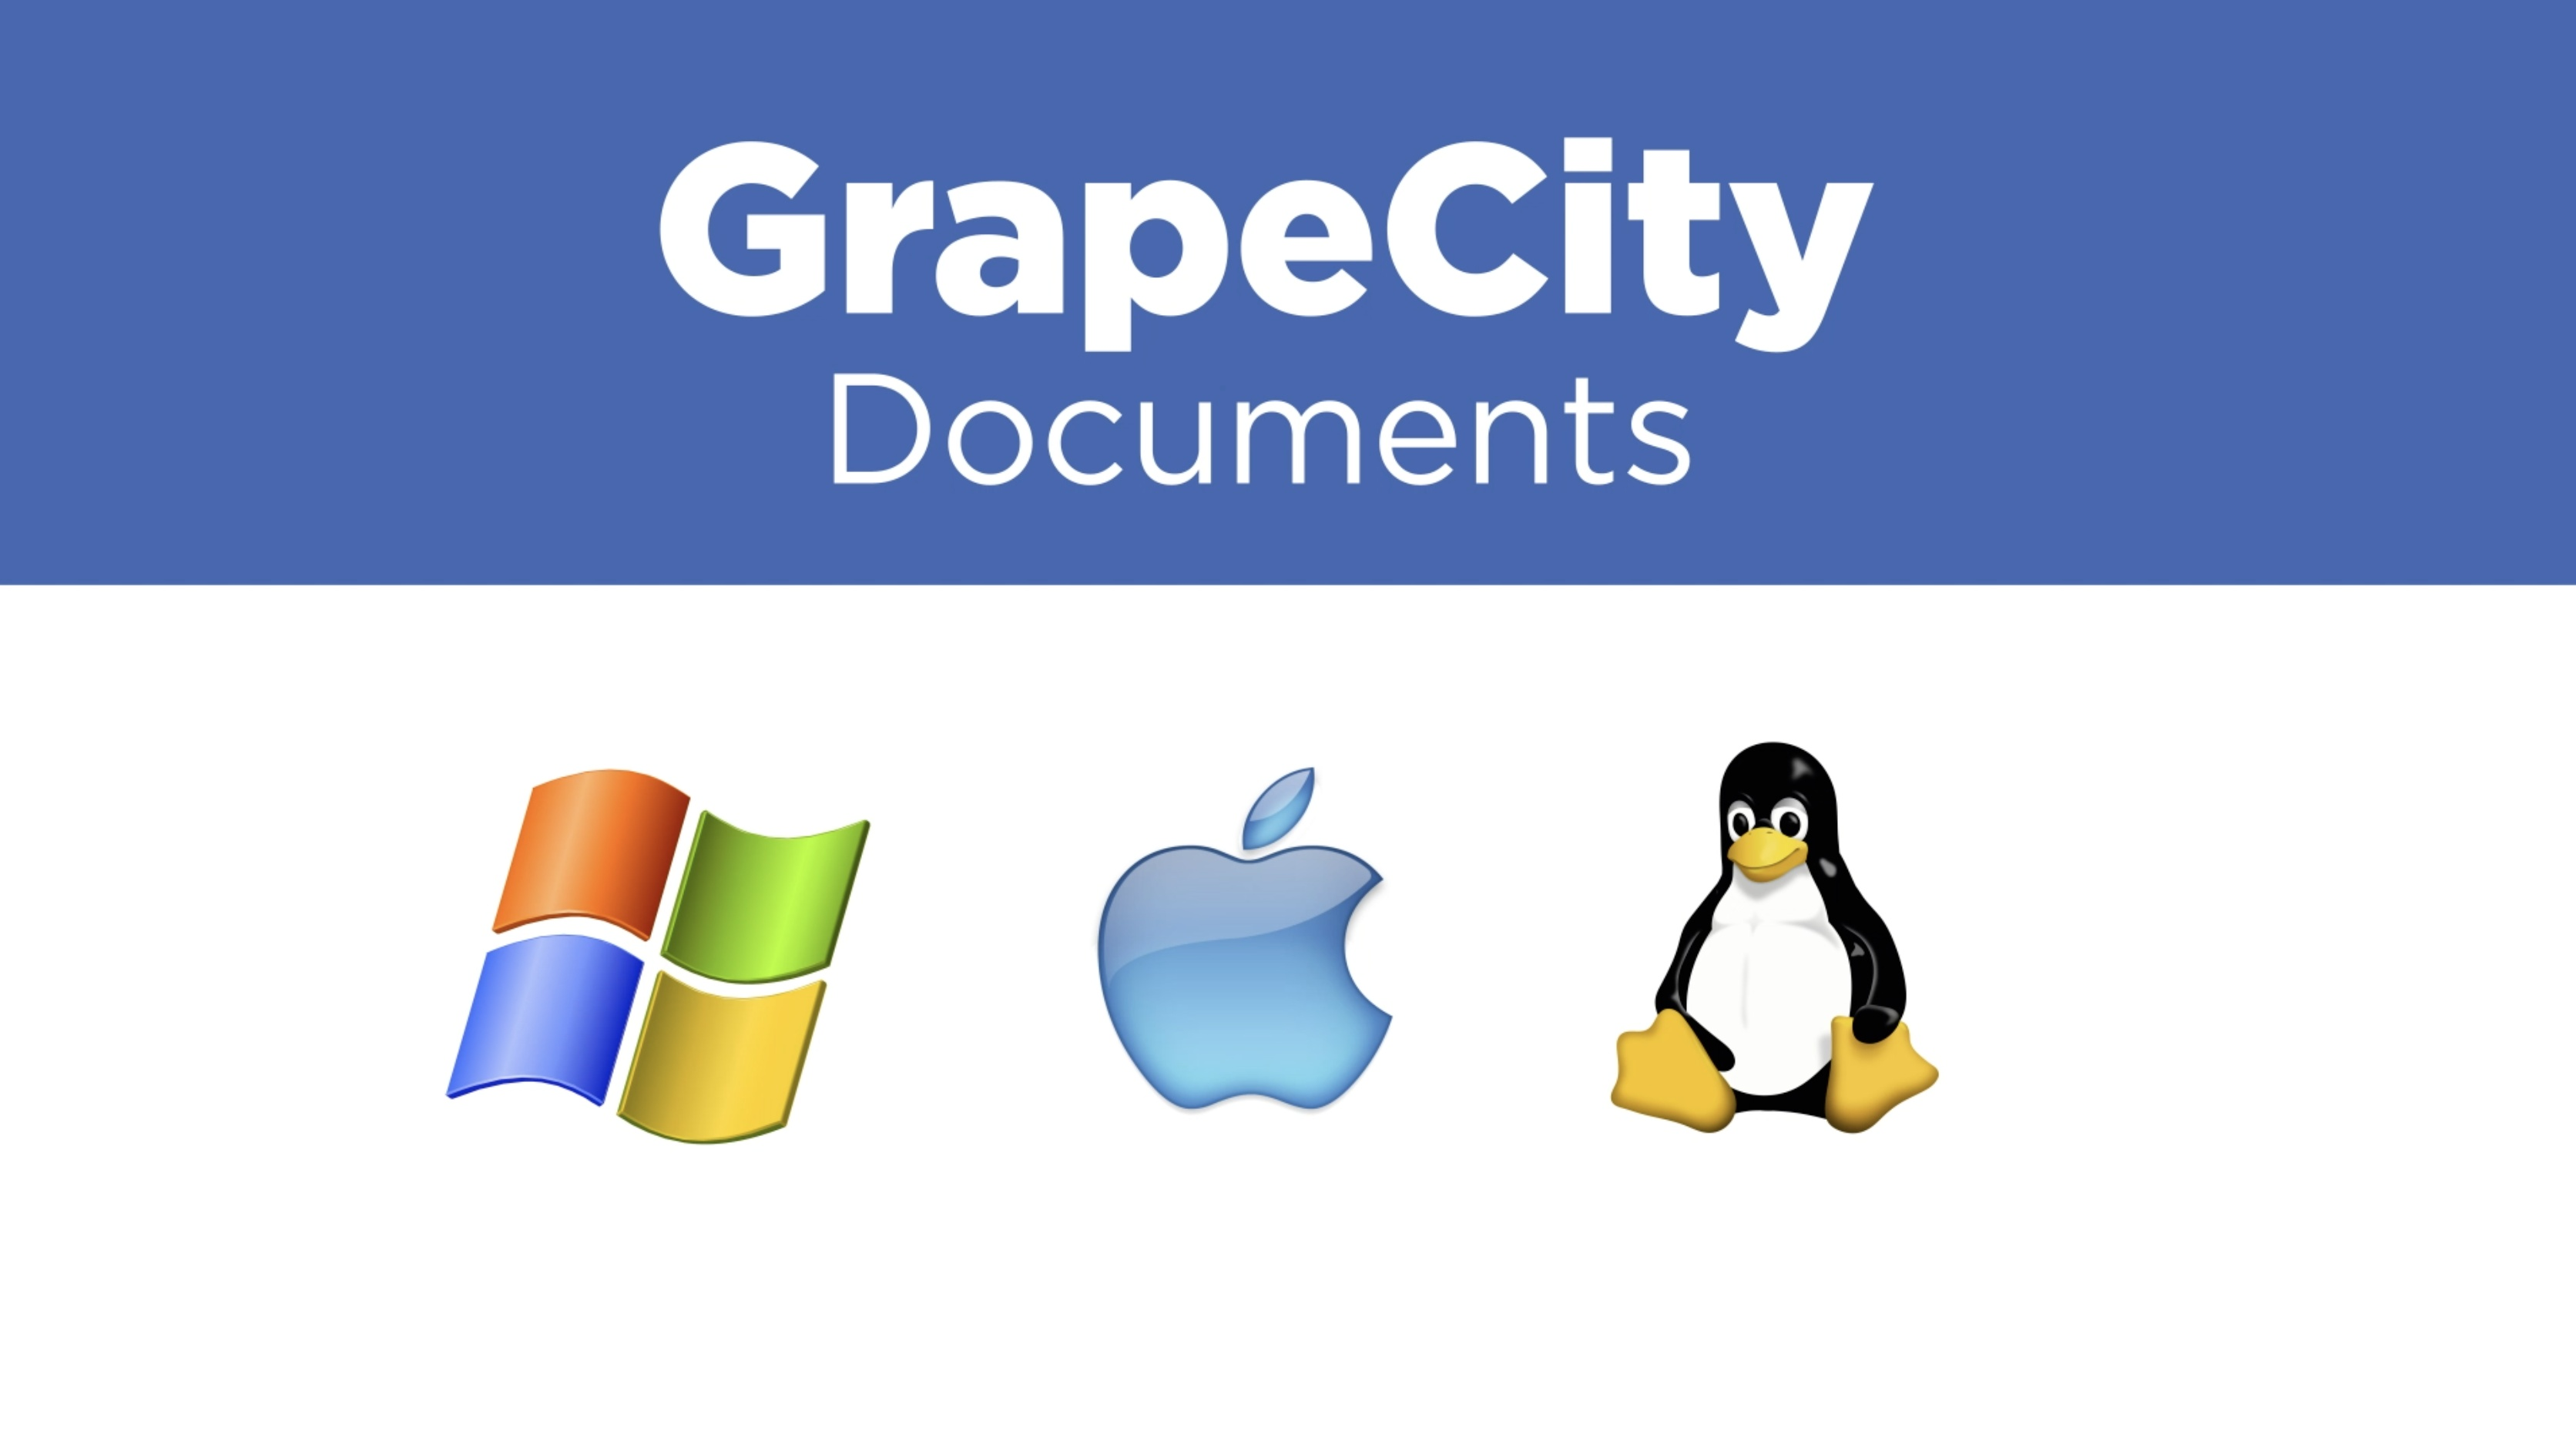 Introducing GrapeCity Documents